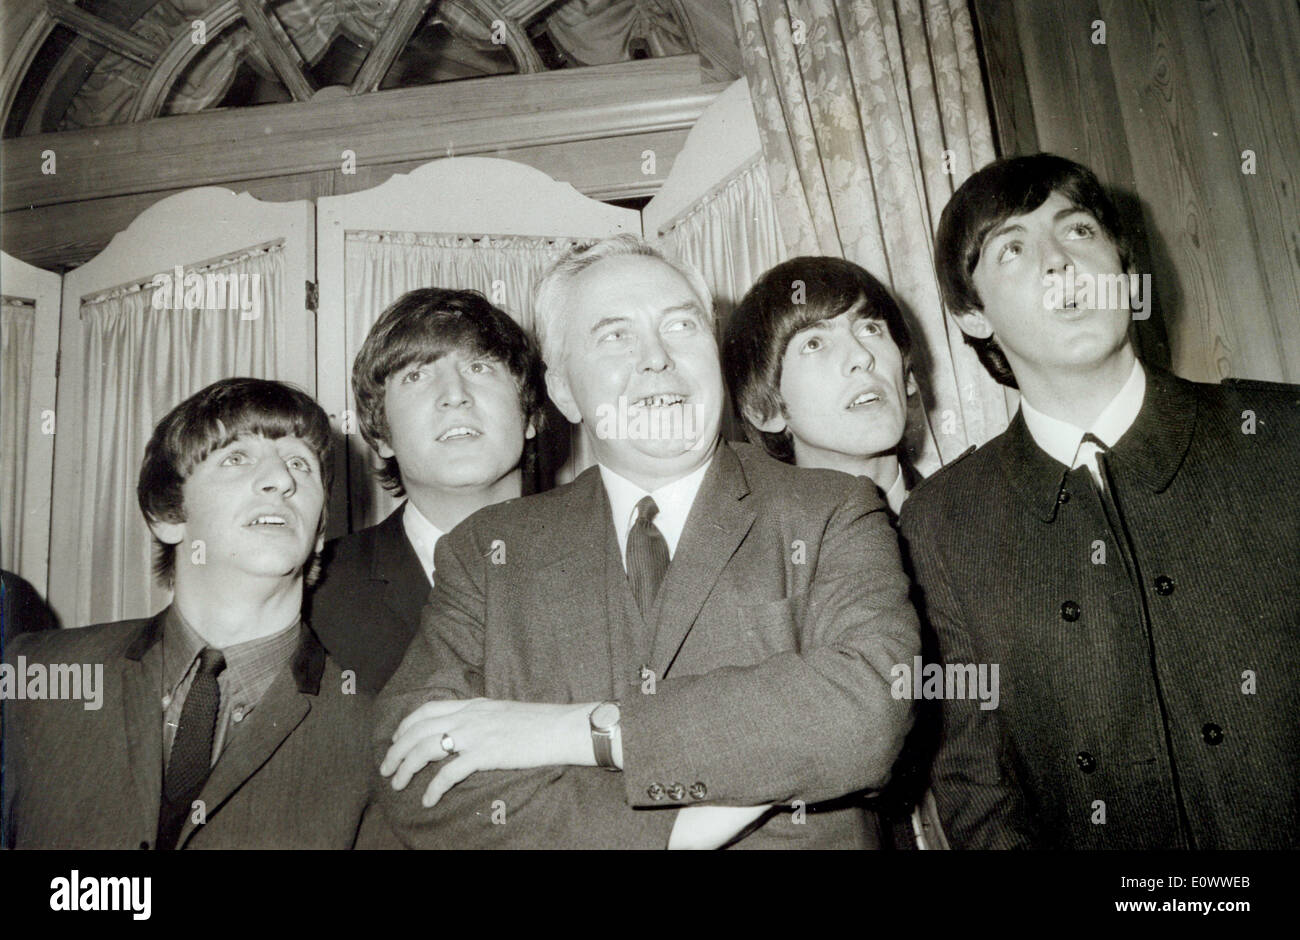 The Beatles meet Harold Wilson at the Dorchester Hotel - Stock Image